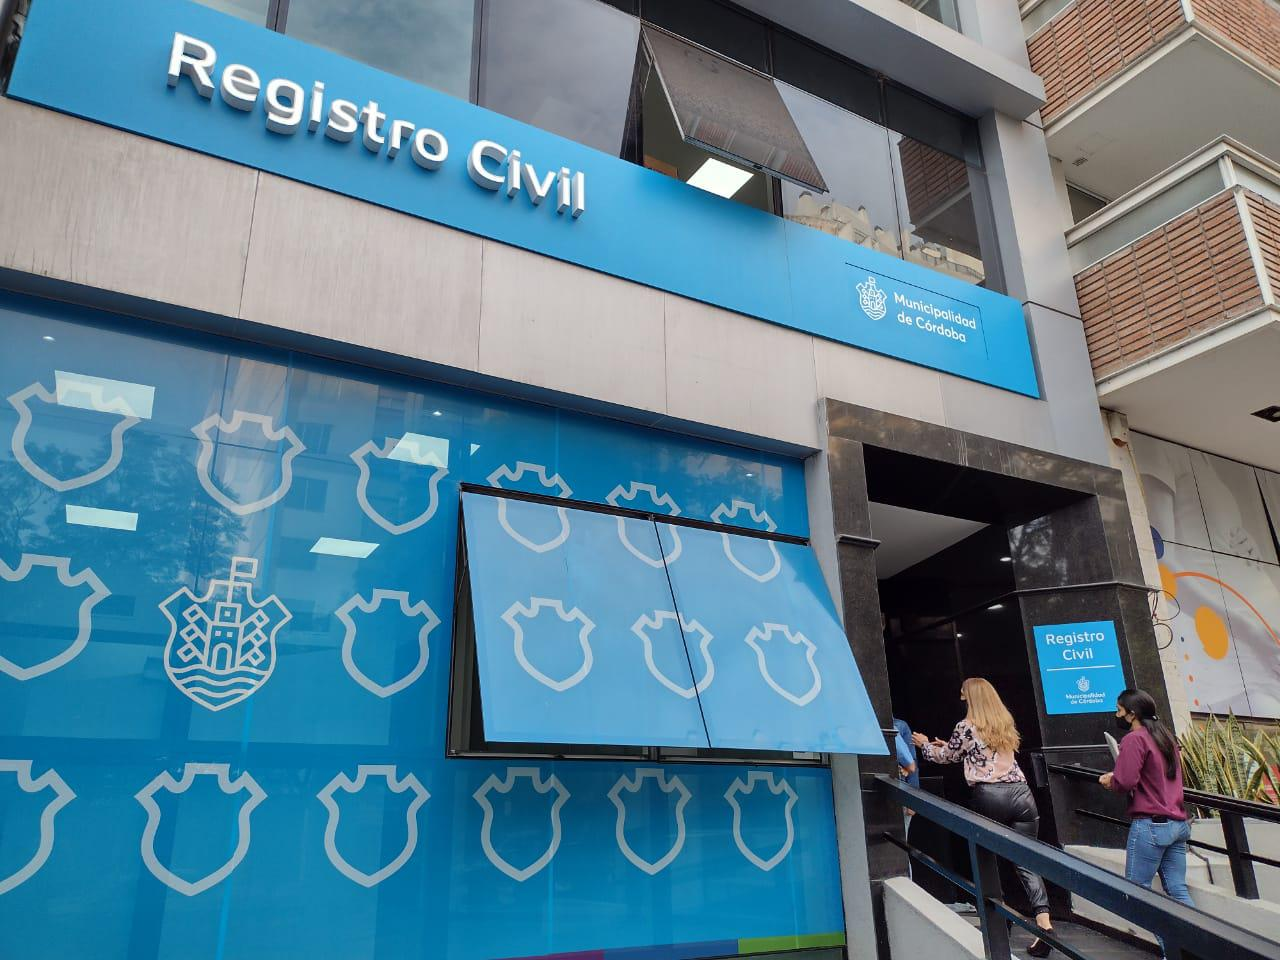 Registro Civil by LNM